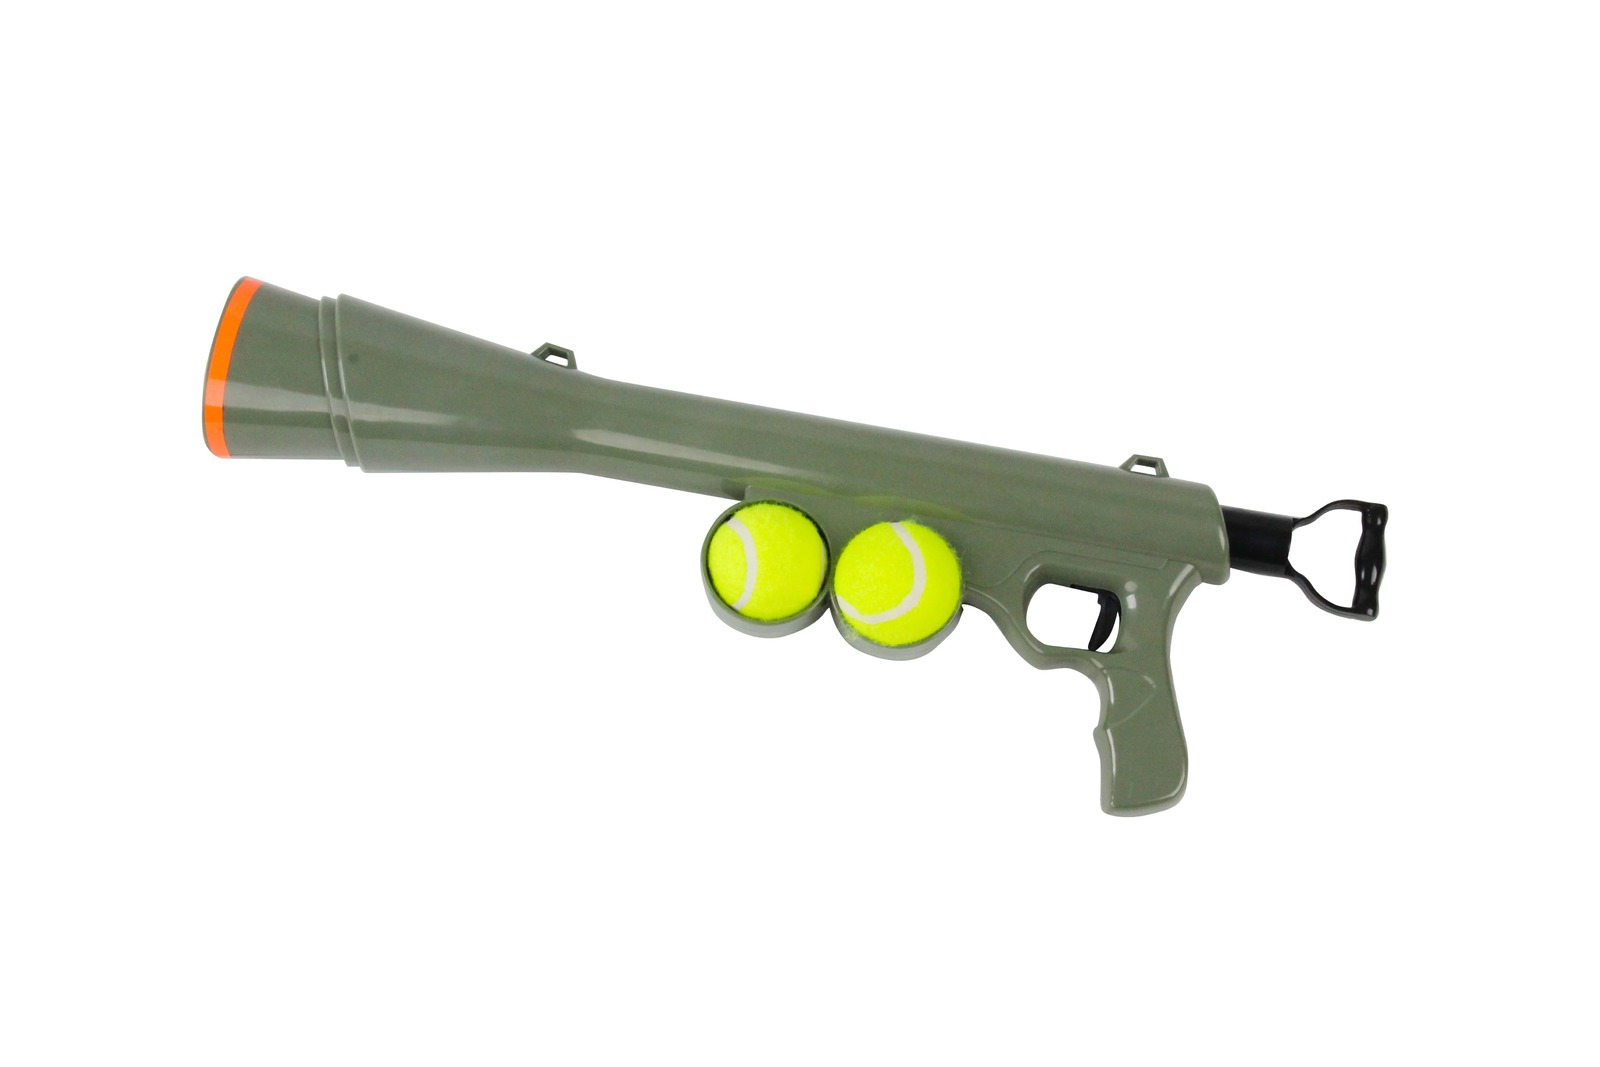 Pawise: Ball Launcher image